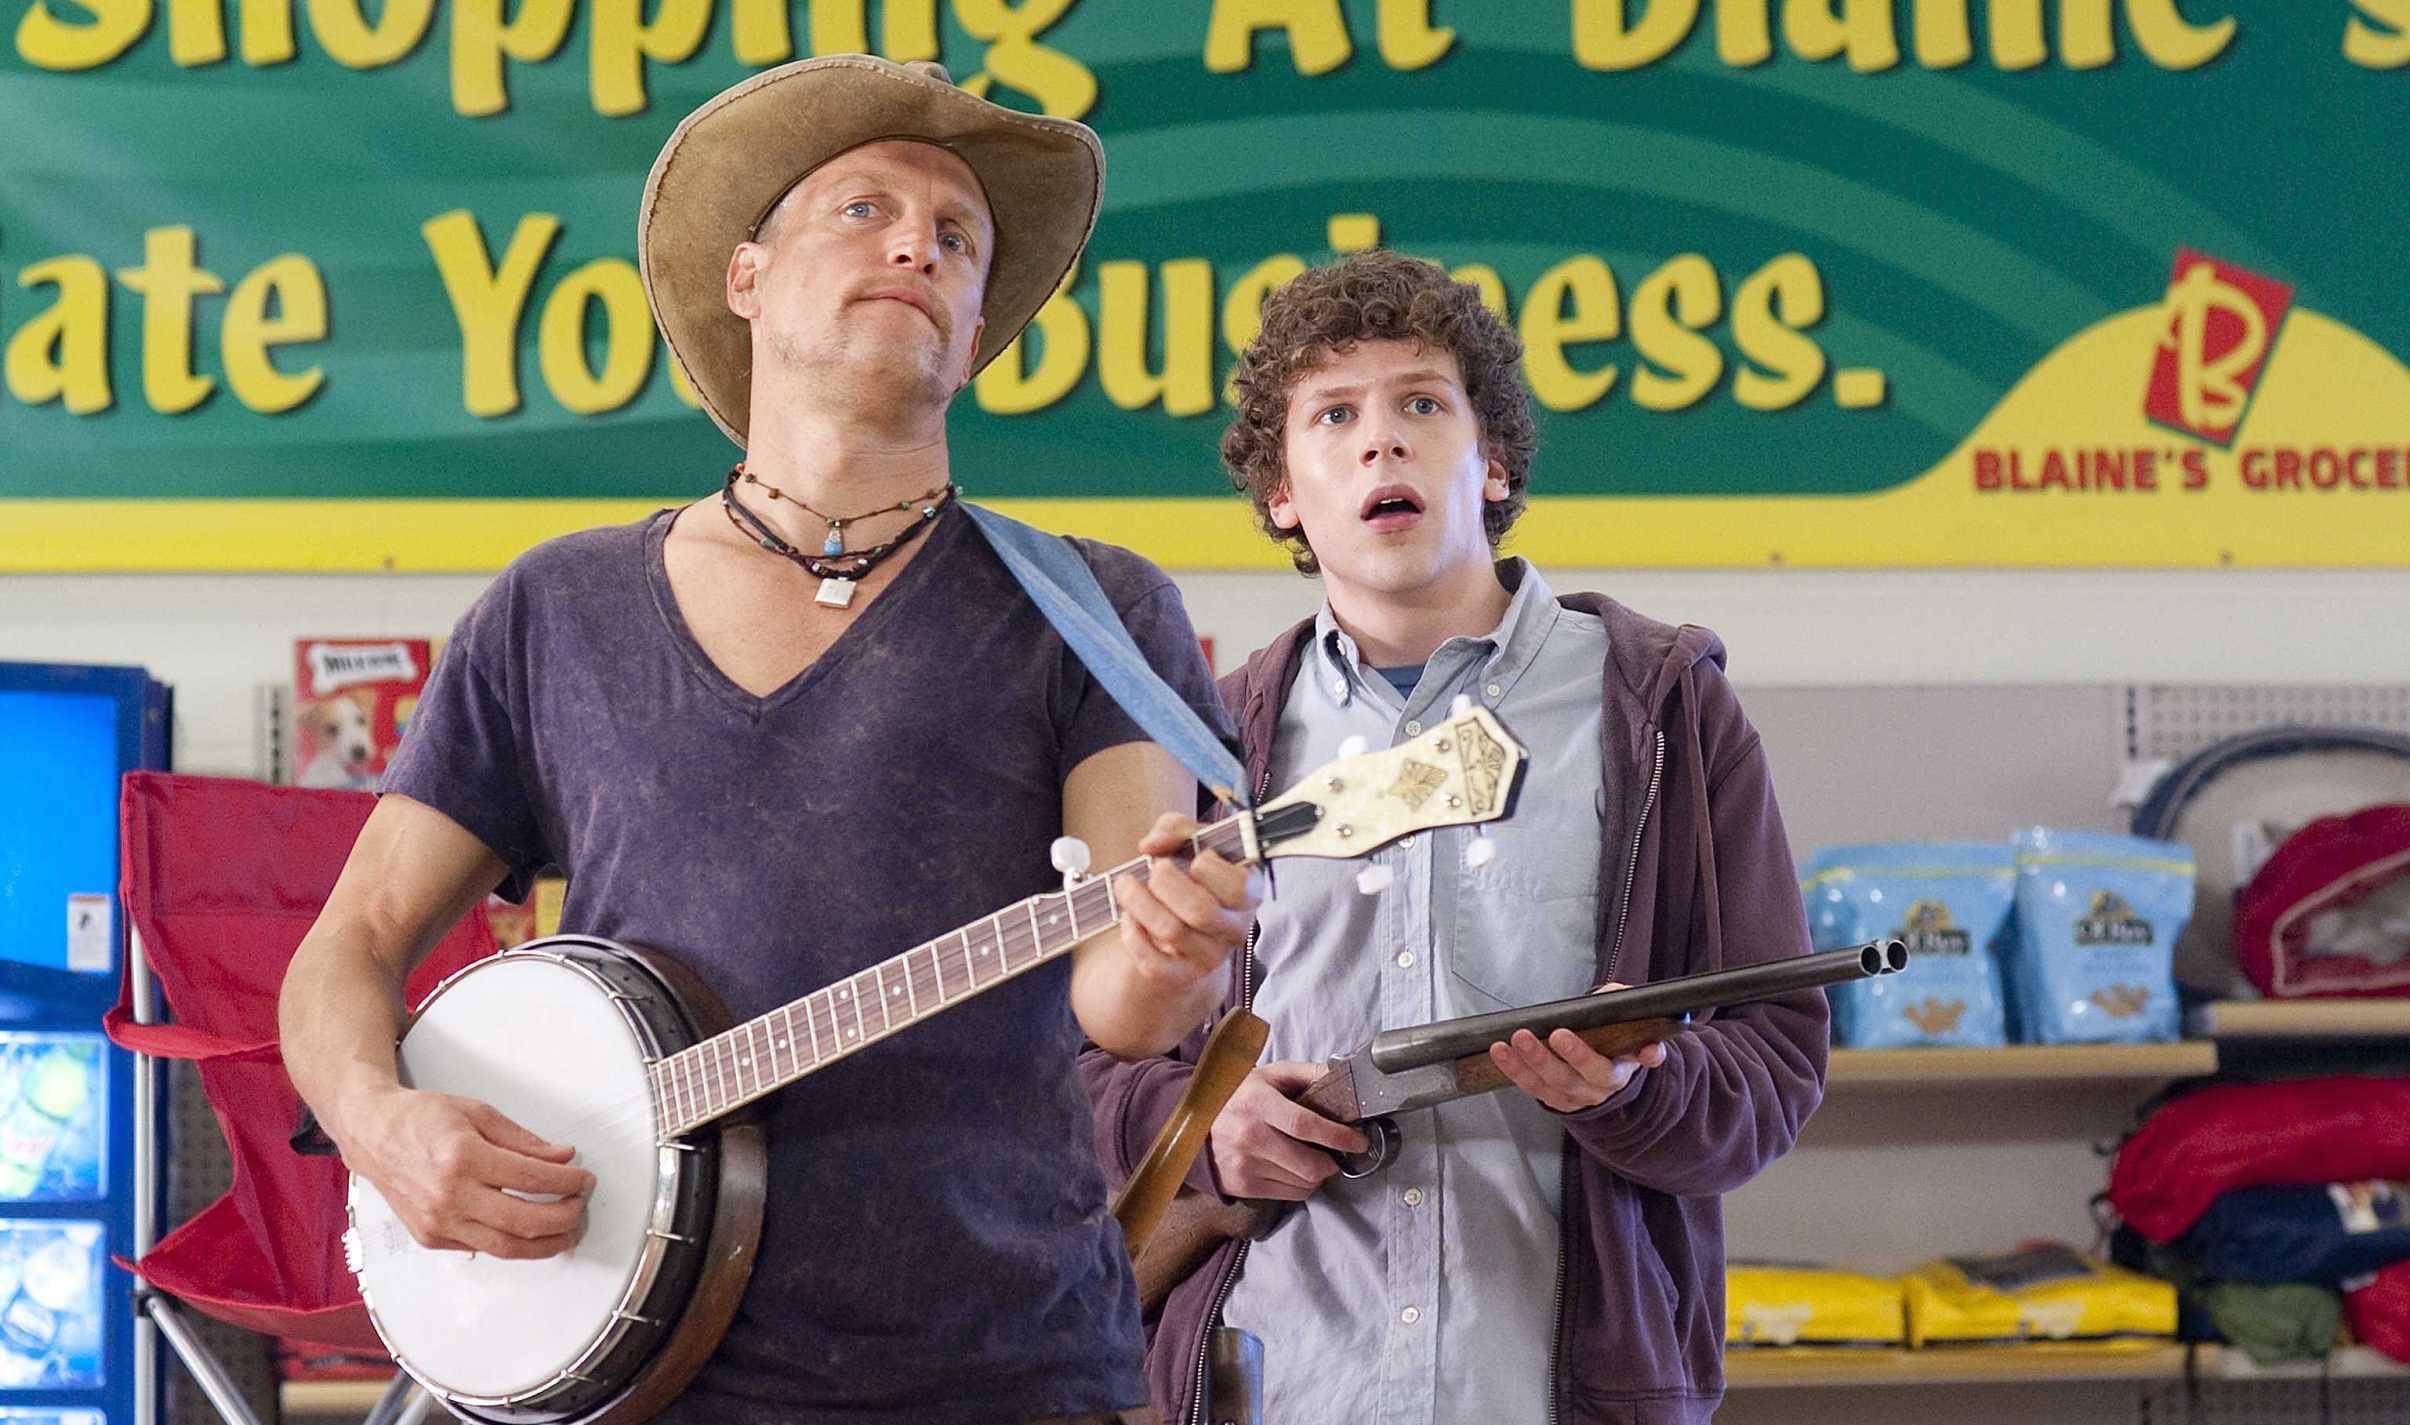 zombieland-stills-zombieland-8538025-2410-1600-zombieland-2-is-a-go-but-would-tallahassee-have-survived-these-zombie-films-jpeg-144489